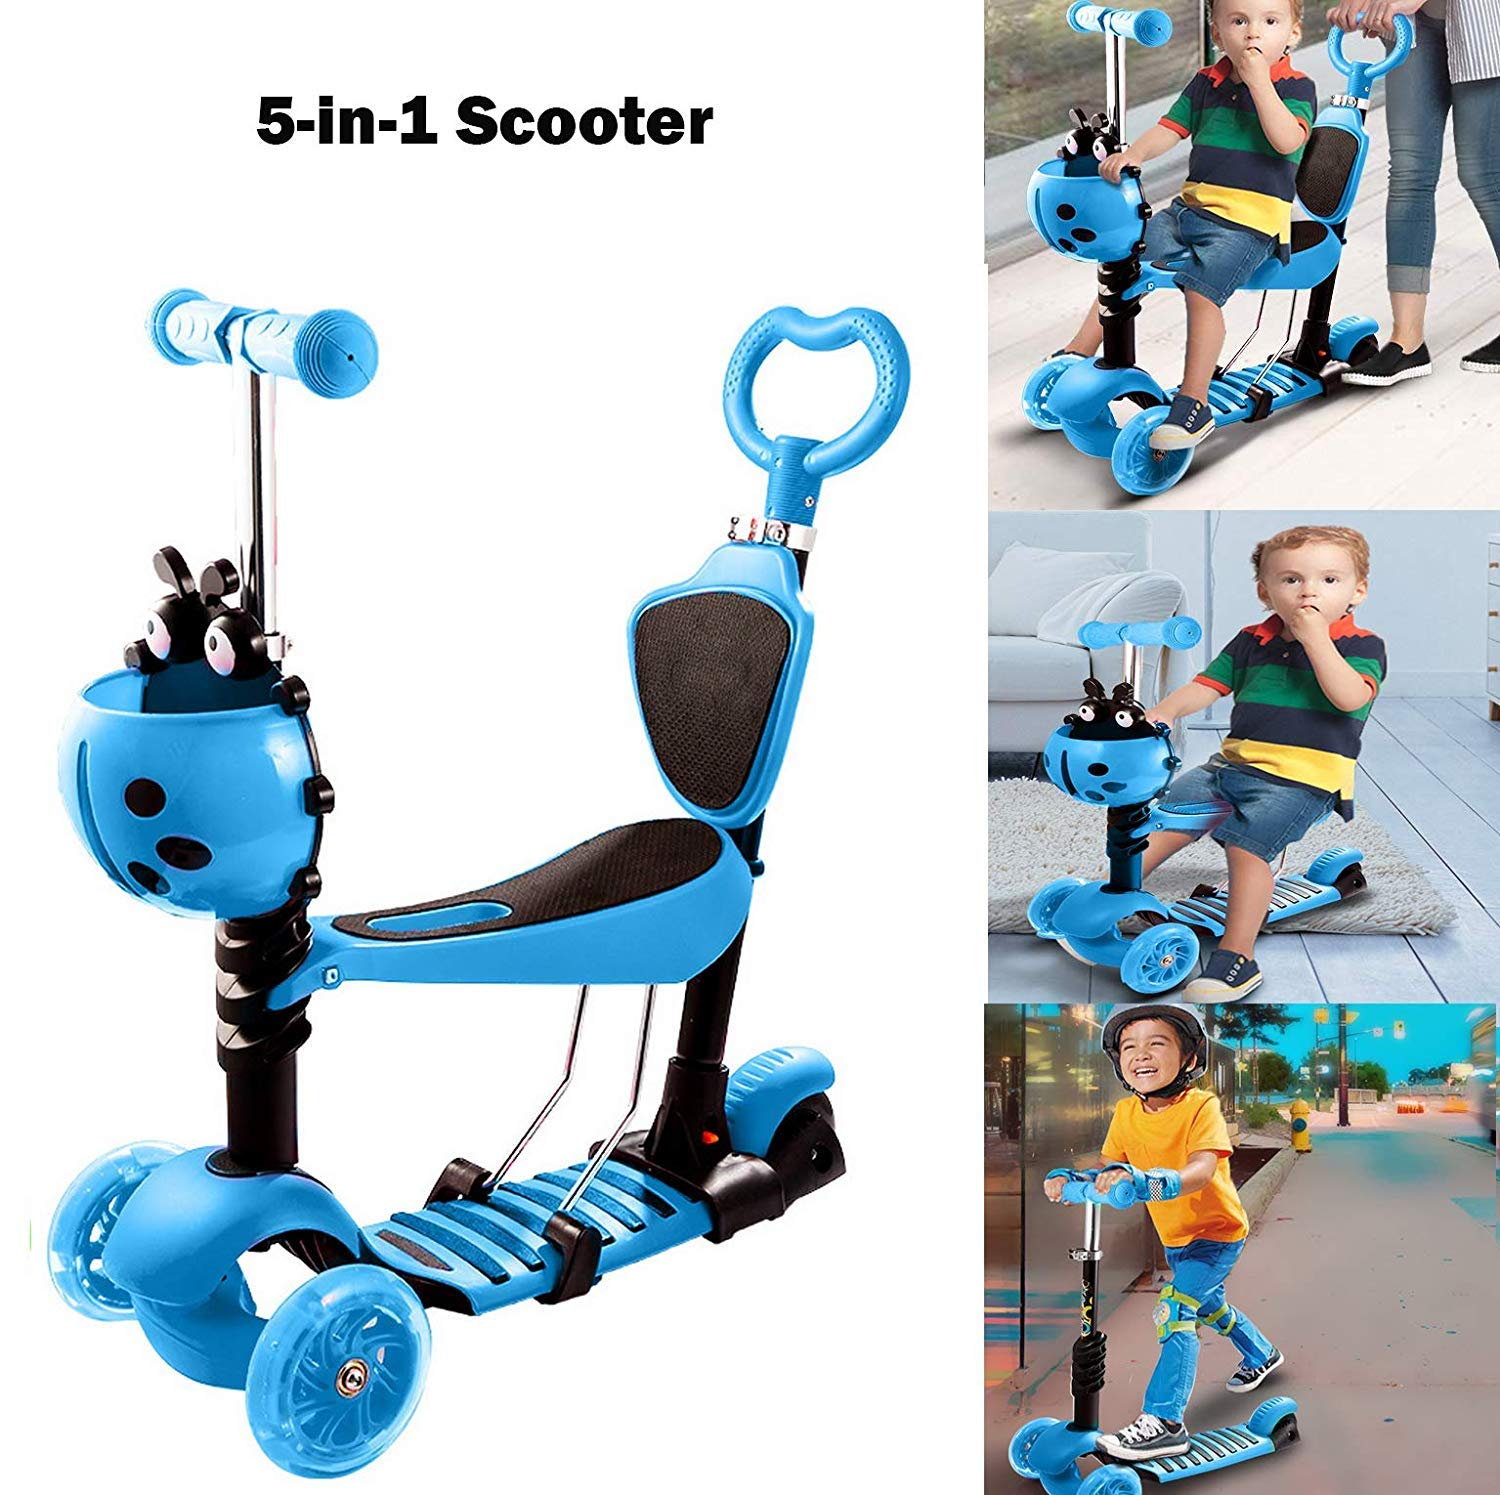 5-in-1 Scooter for Toddlers Kids with Seat - Adjustable Detachable Portable  3 Wheel Kick Scooter with LED Light up Wheels   Gift for Baby Boys Girls 1 to 6 Yeard Old [US STOCK] ([5-in-1] Blue)